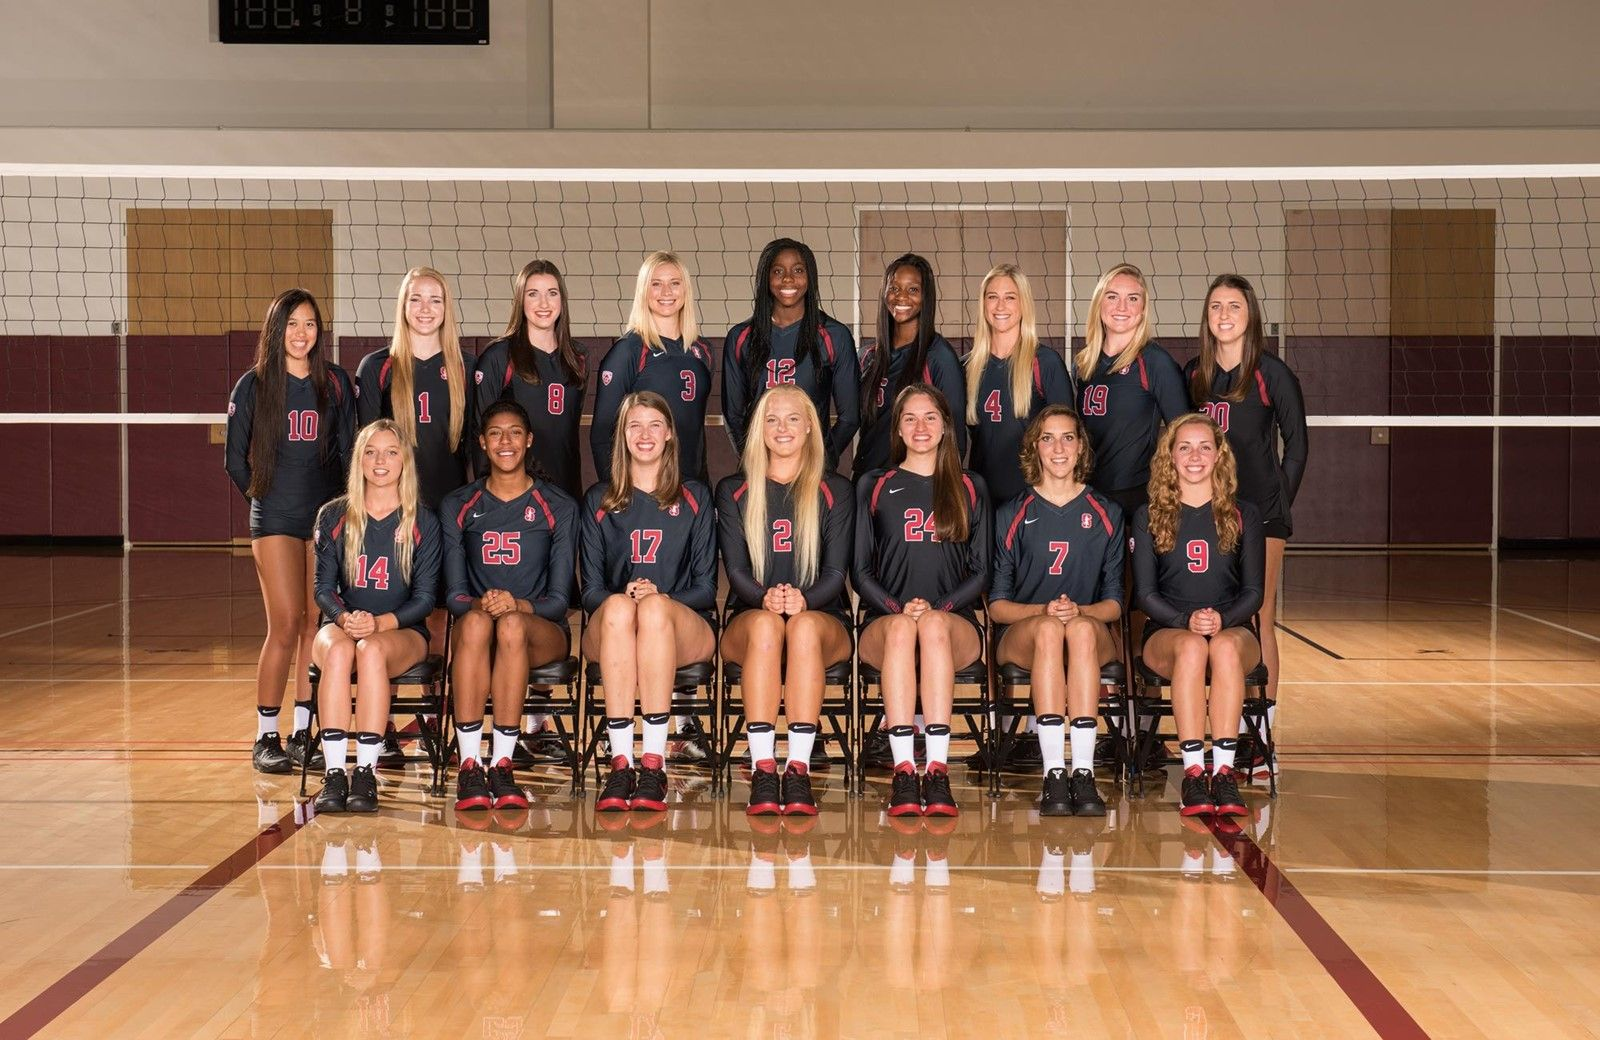 2016 Women S Volleyball Roster Gostanford Com Stanford Athletics Women Volleyball Stanford Volleyball Volleyball Pictures